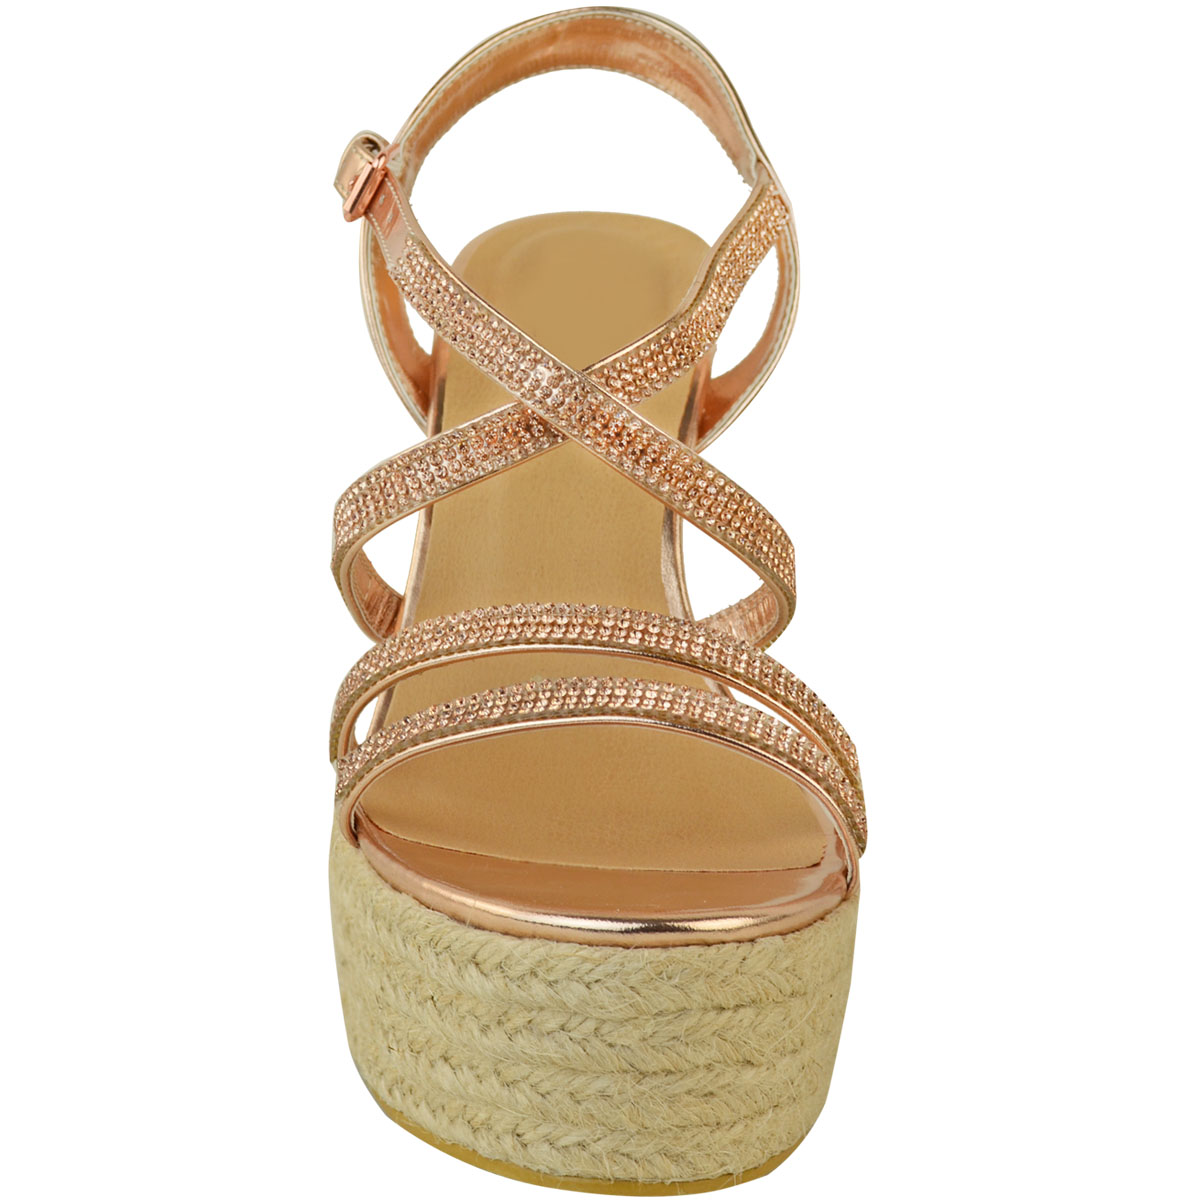 Womens-Ladies-Strappy-Diamante-Wedge-High-Heels-Sandals-Platforms-Shoes-Size-UK thumbnail 16